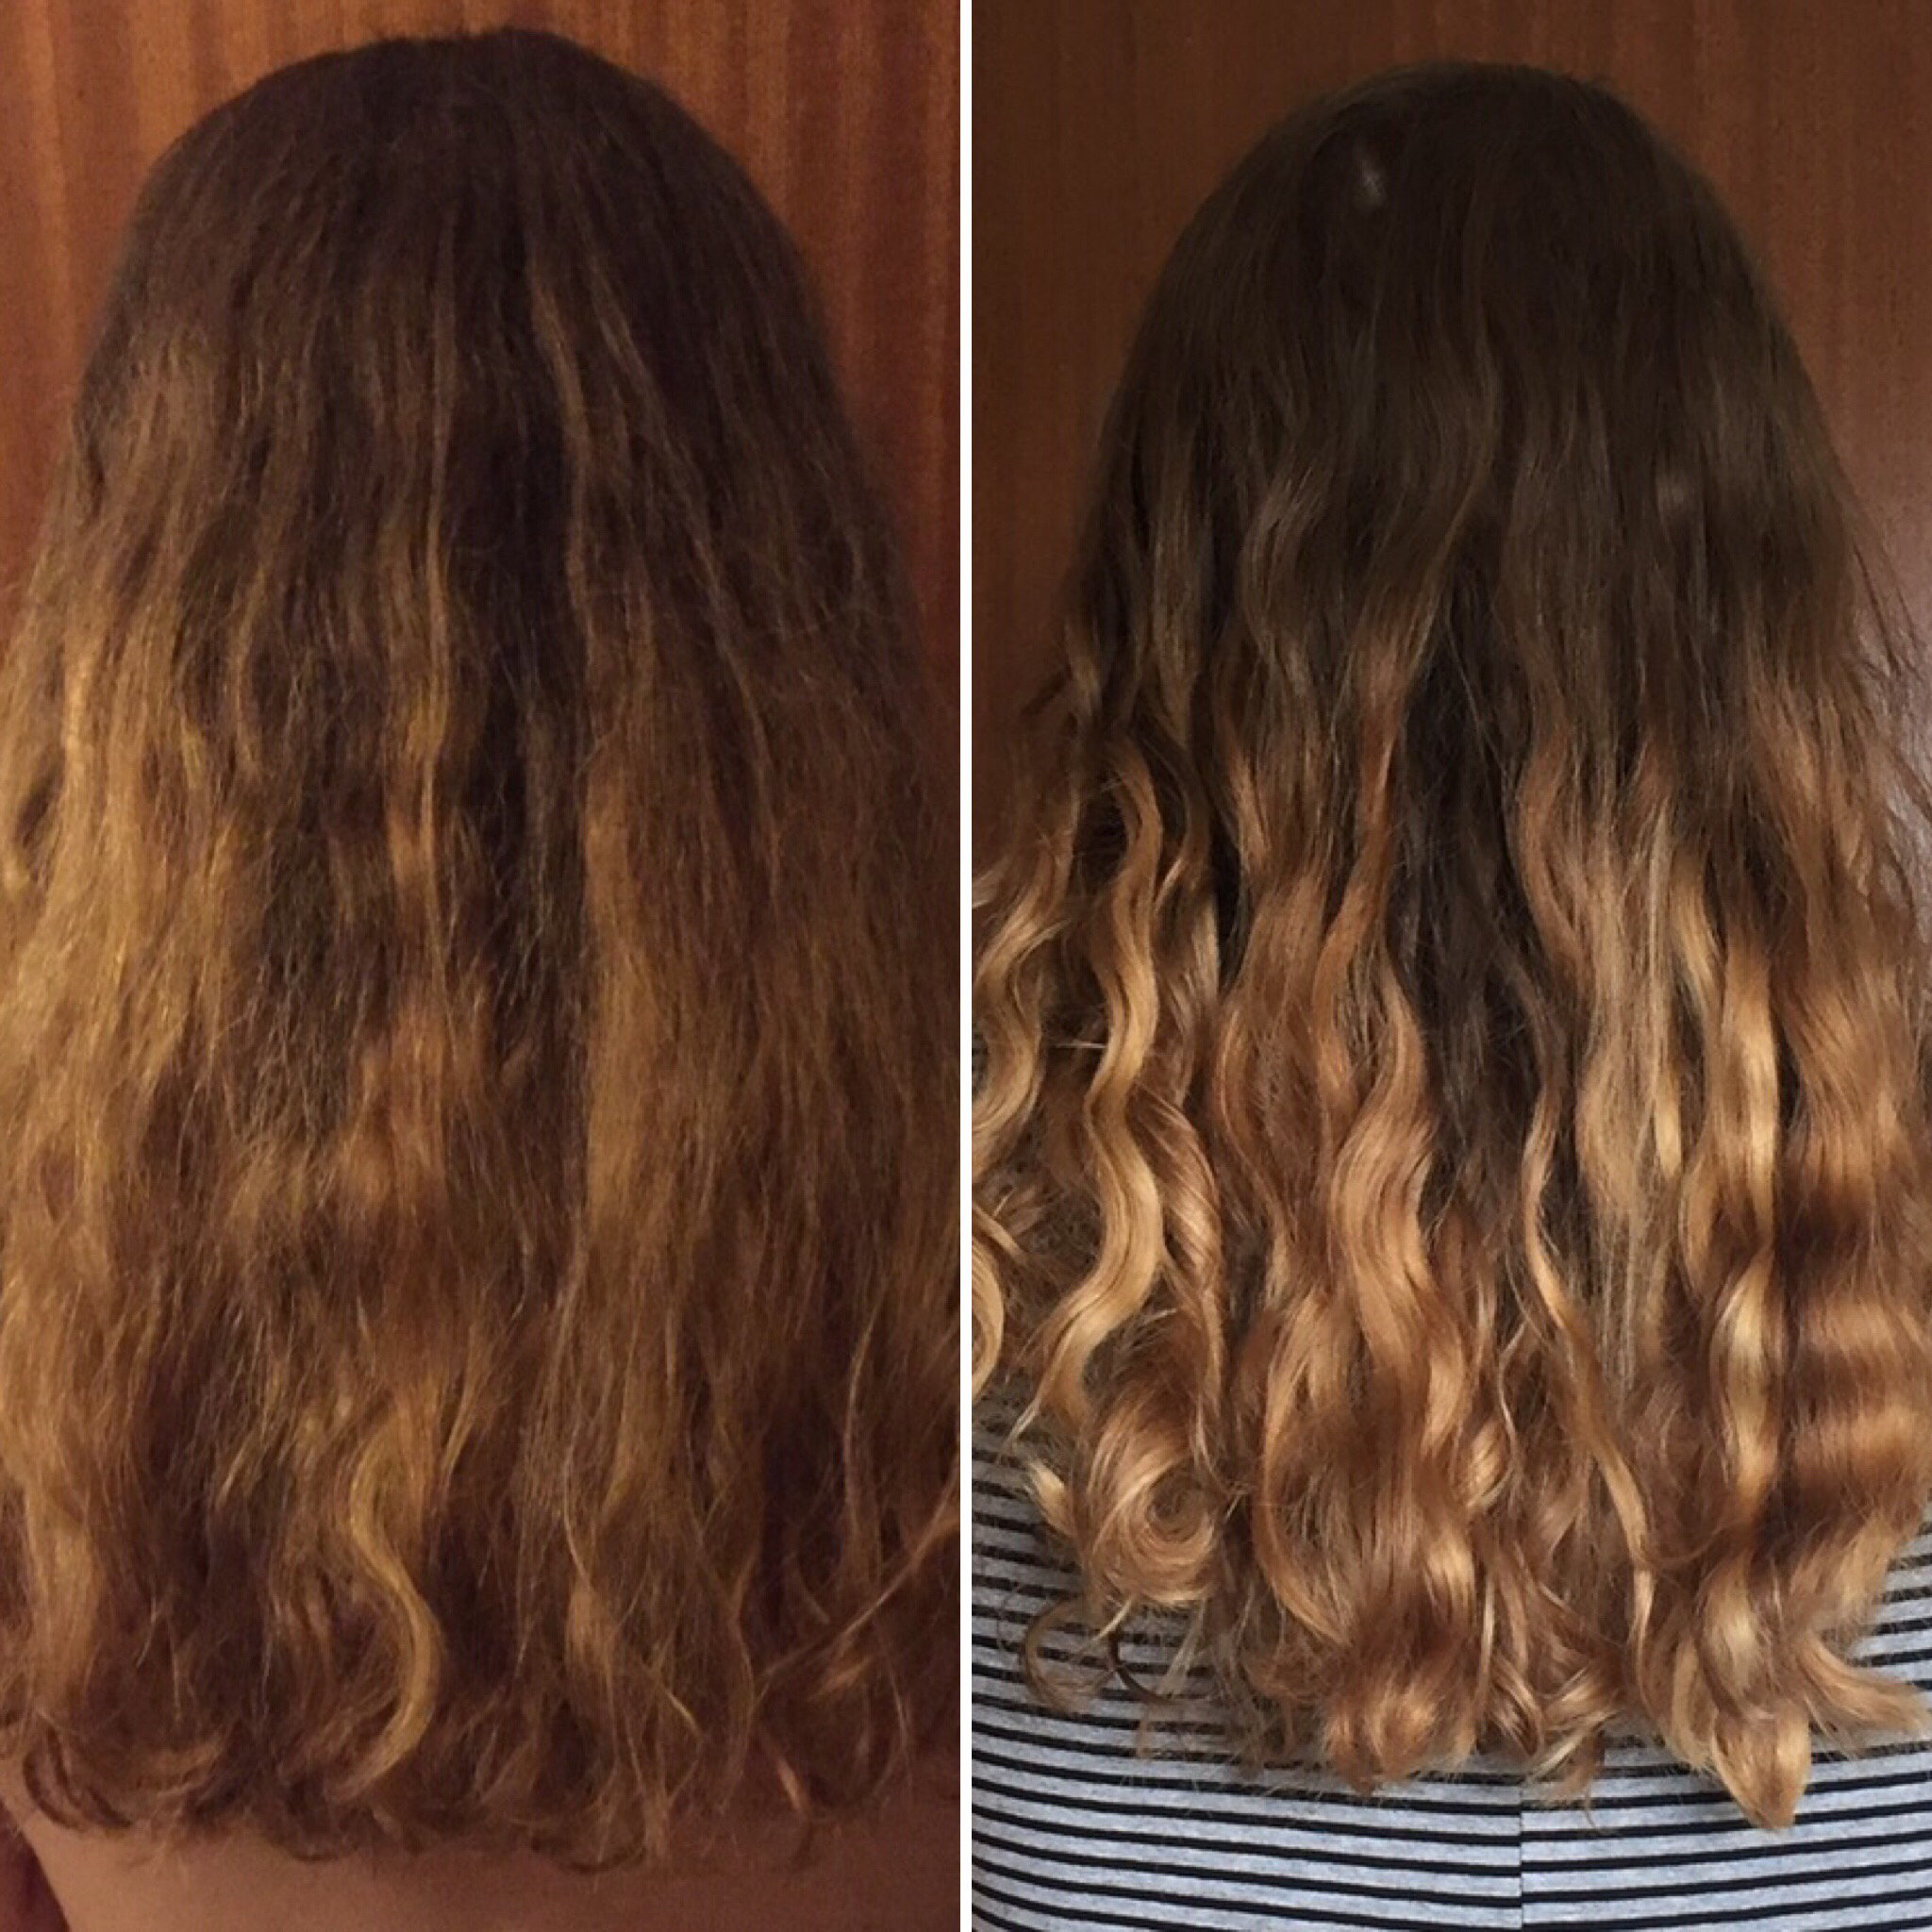 Give Me A Head With Hair Long Beautiful Hair Hair Mask Review